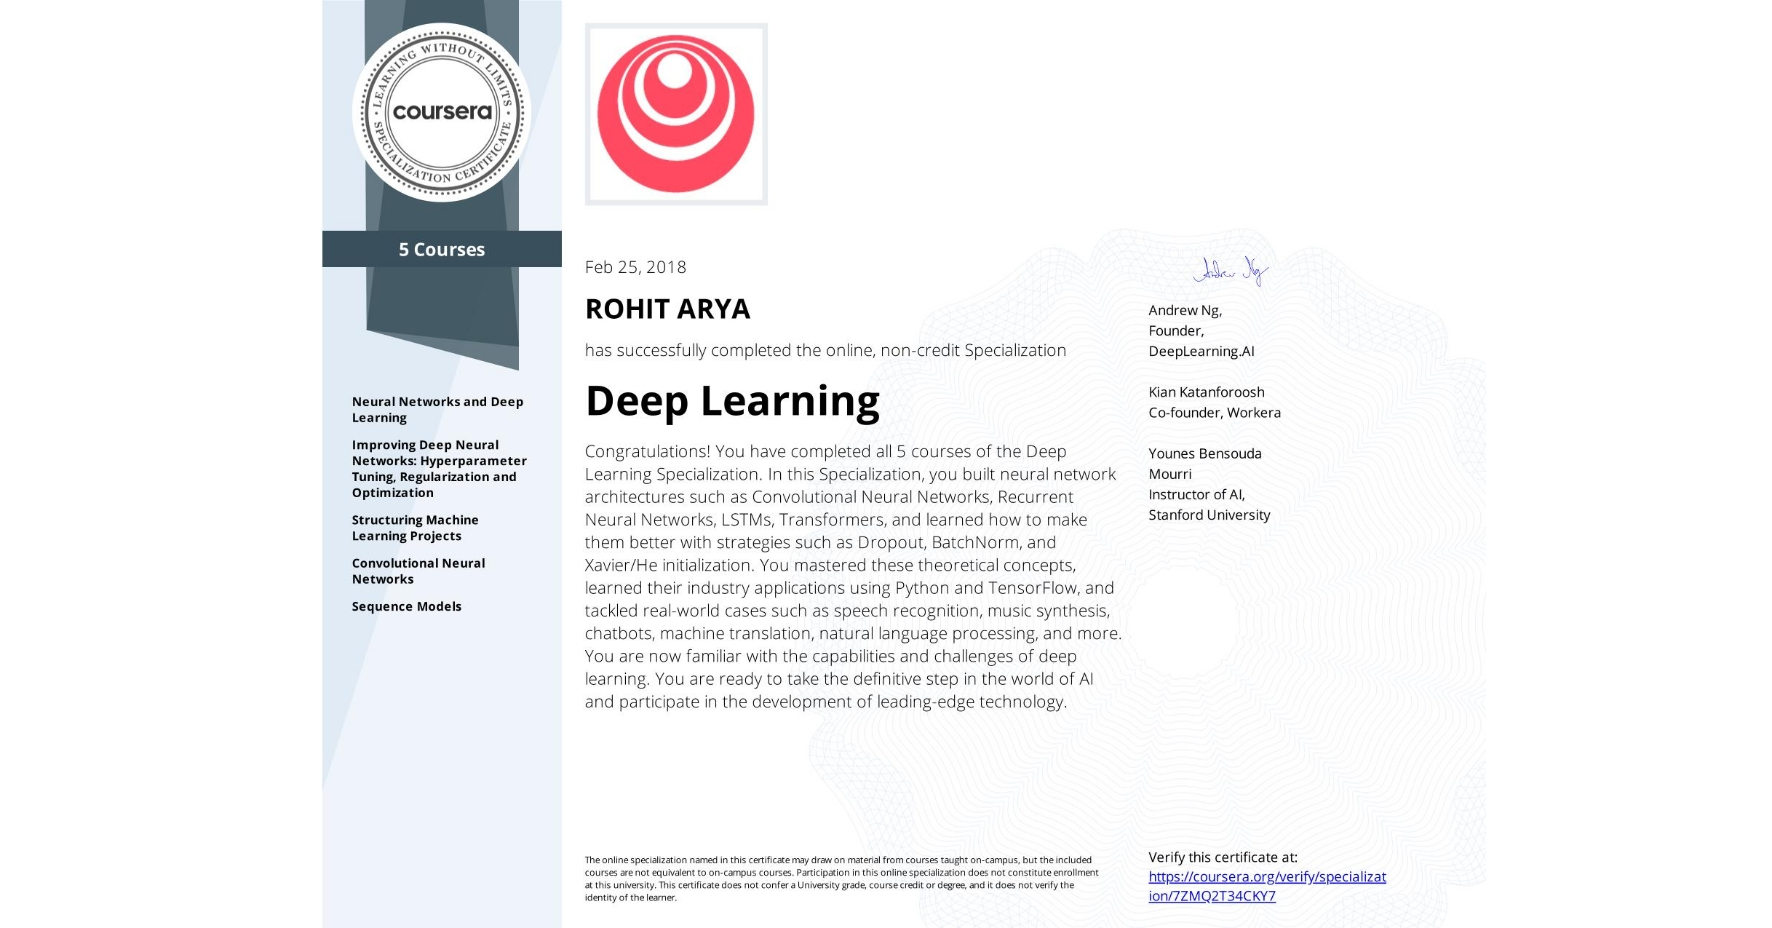 View certificate for ROHIT ARYA, Deep Learning, offered through Coursera. The Deep Learning Specialization is designed to prepare learners to participate in the development of cutting-edge AI technology, and to understand the capability, the challenges, and the consequences of the rise of deep learning. Through five interconnected courses, learners develop a profound knowledge of the hottest AI algorithms, mastering deep learning from its foundations (neural networks) to its industry applications (Computer Vision, Natural Language Processing, Speech Recognition, etc.).